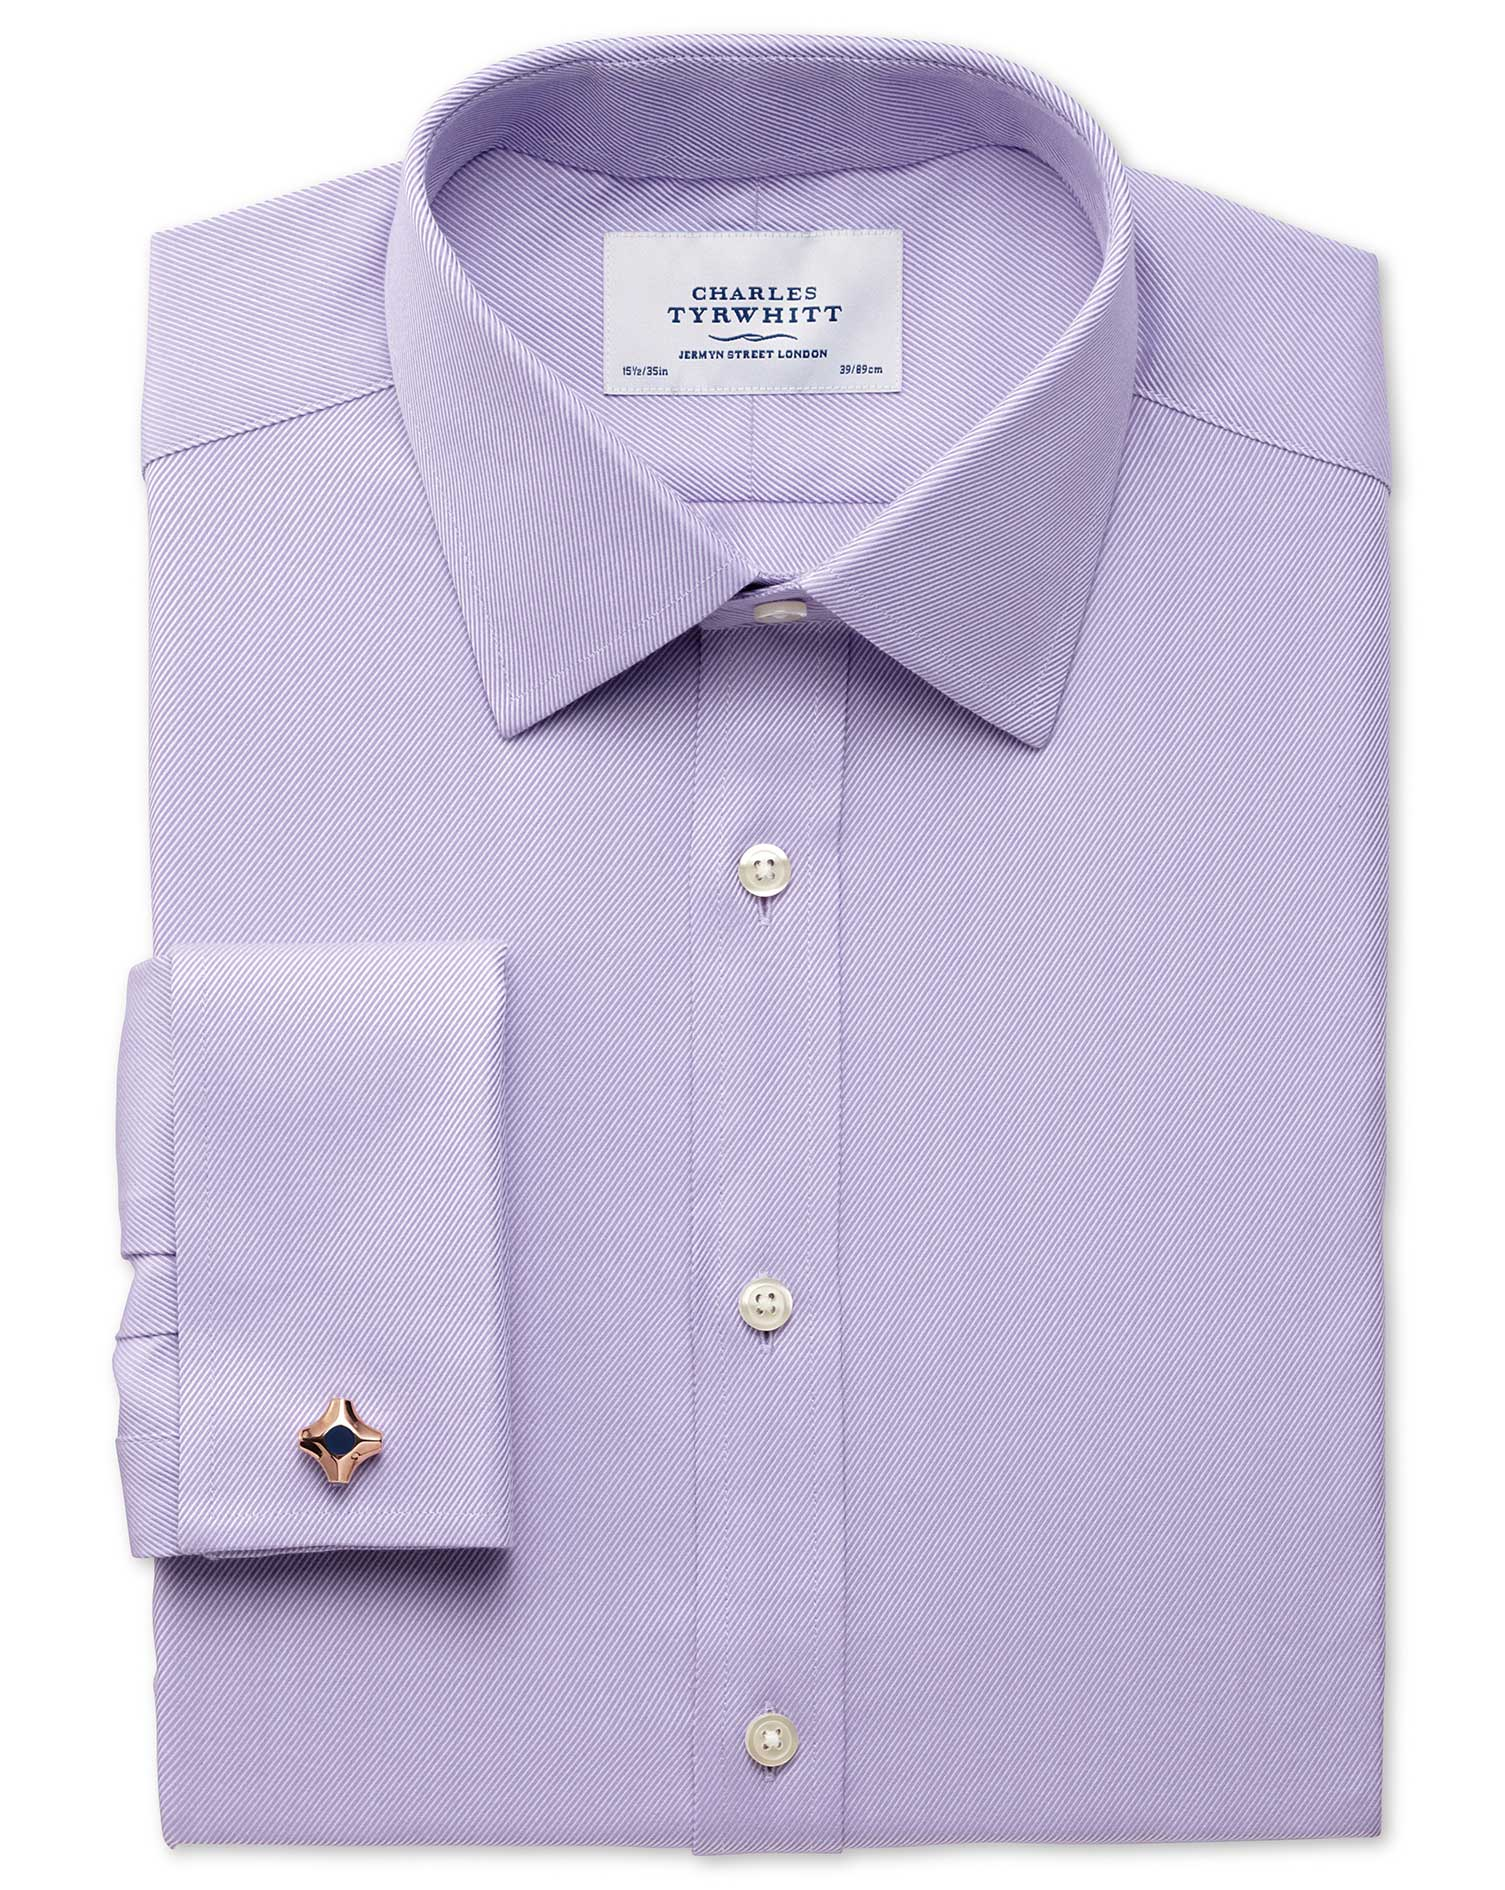 Classic Fit Egyptian Cotton Cavalry Twill Lilac Formal Shirt Double Cuff Size 16.5/36 by Charles Tyr